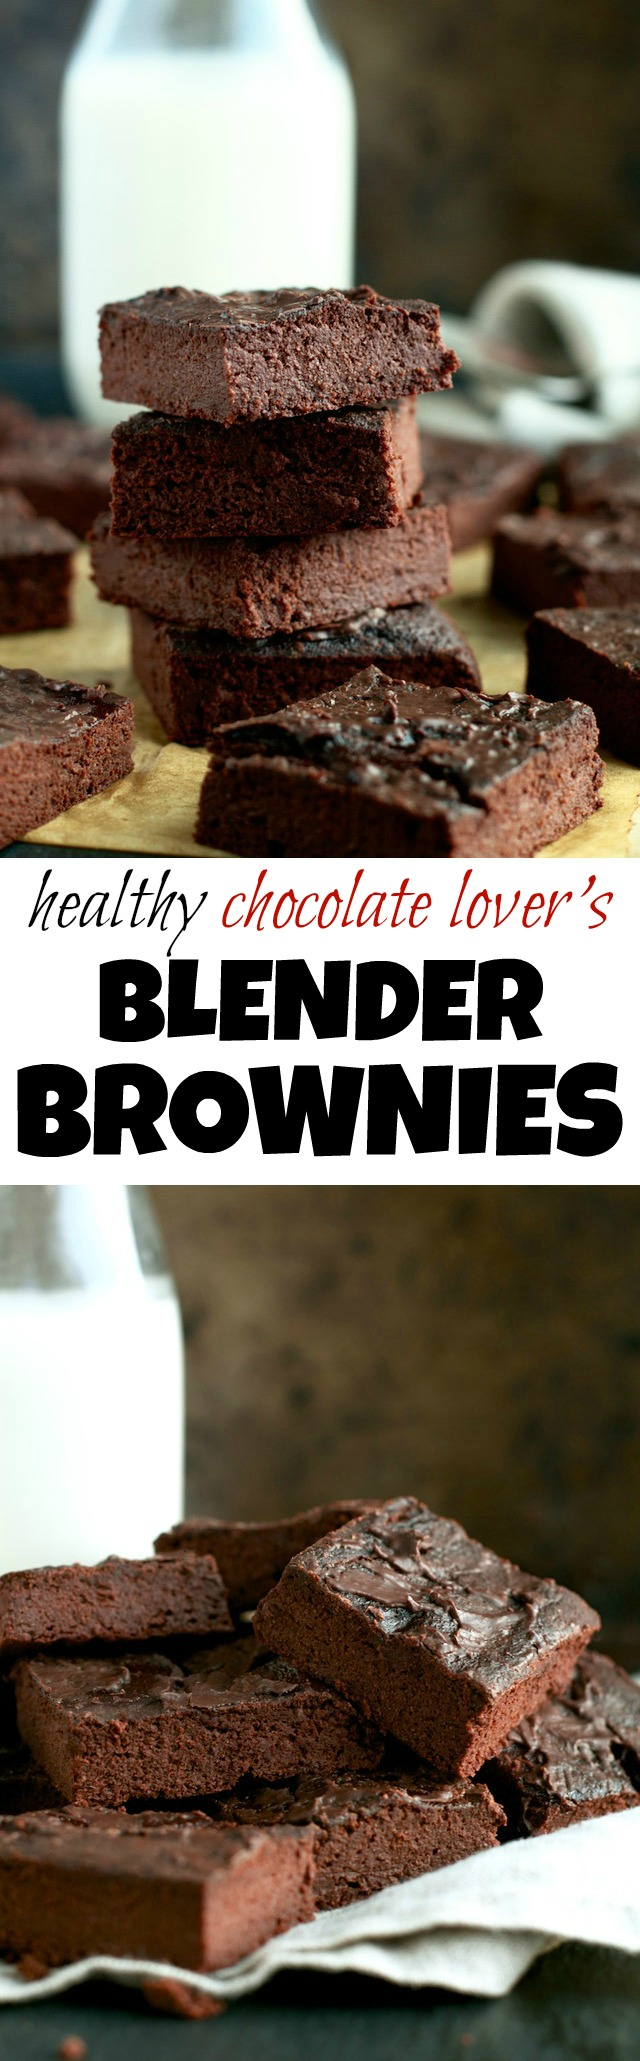 Healthy Chocolate Lover's Blender Brownies | running with spoons